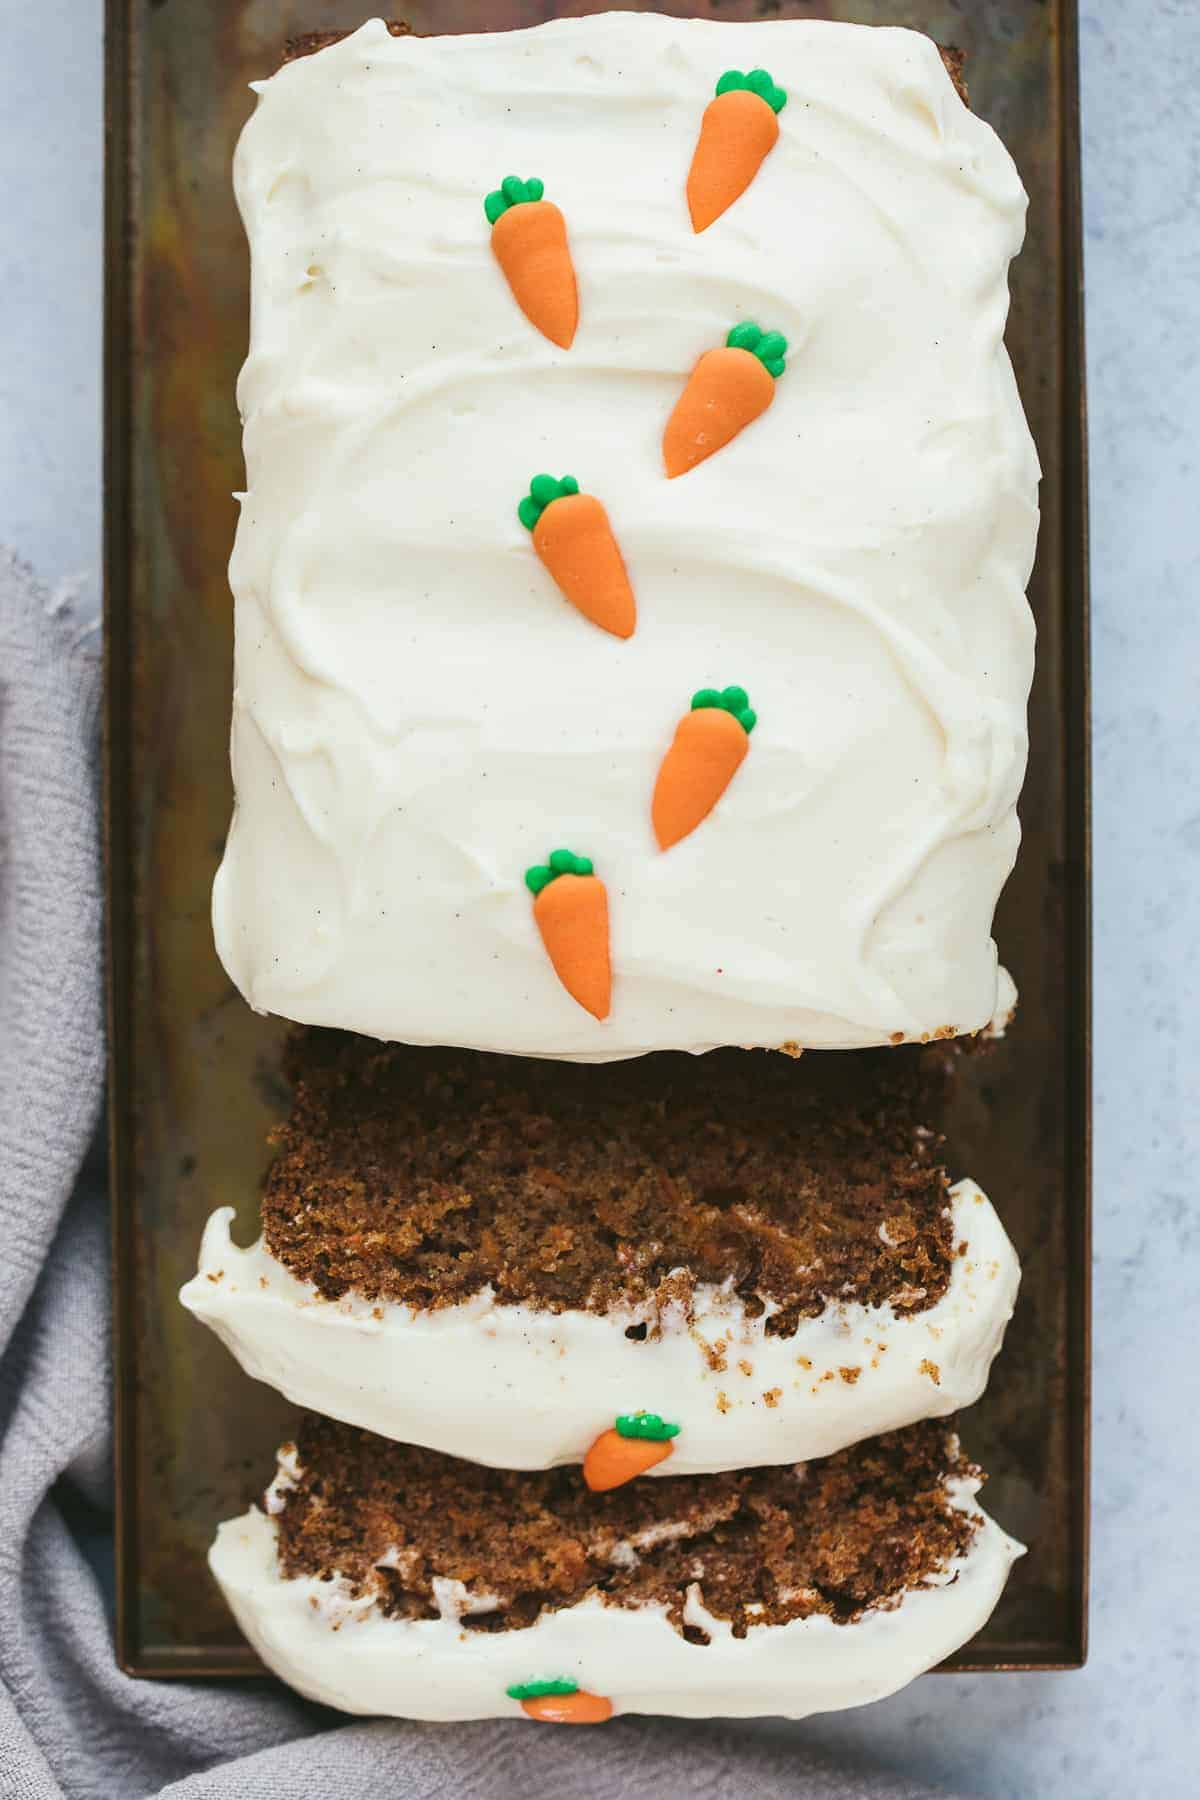 A carrot cake loaf that has two slices cut away. There is a cream cheese frosting on top and tiny fondant carrots.